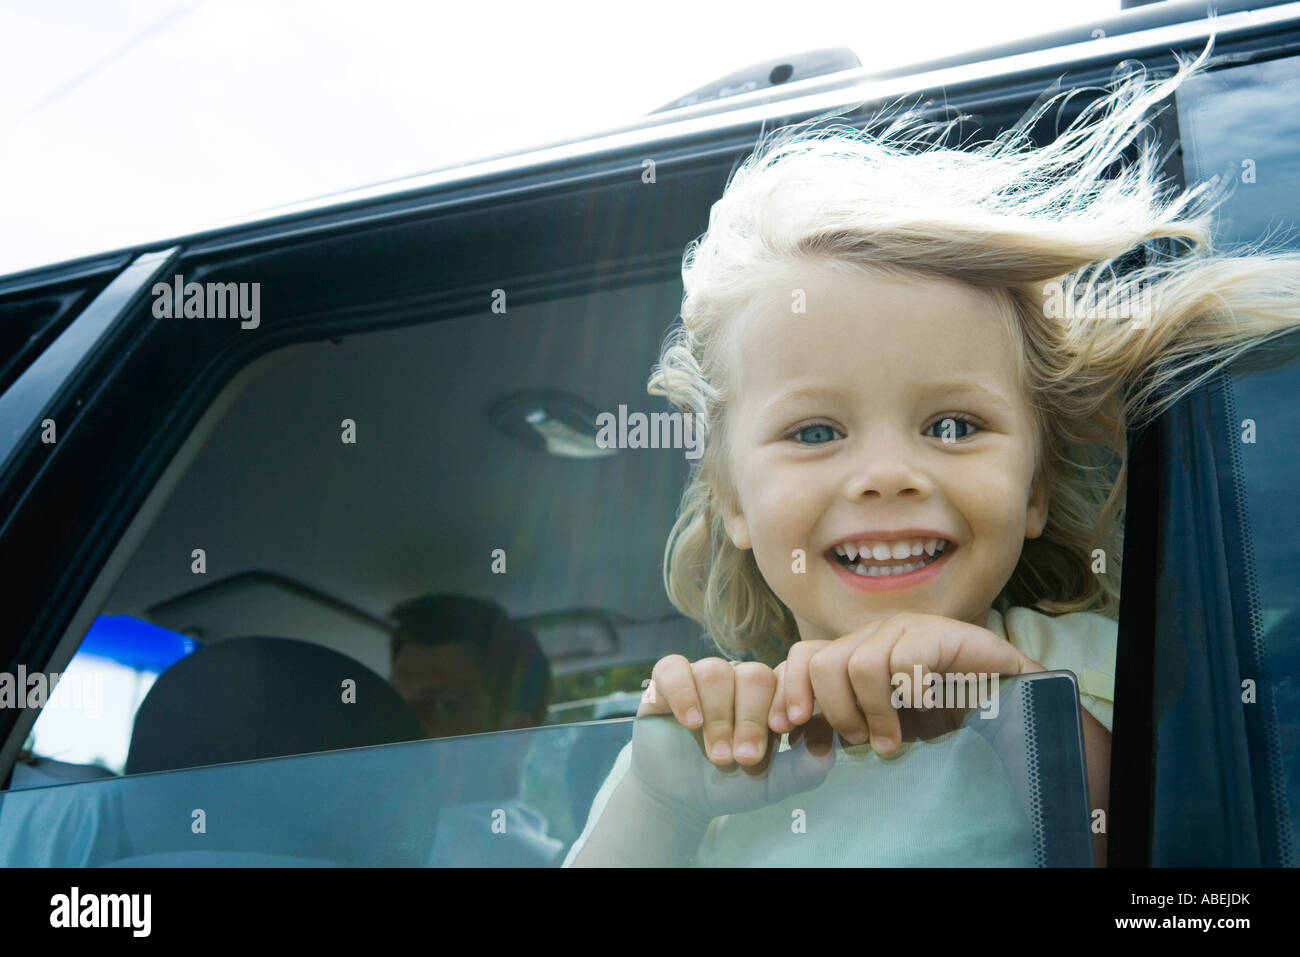 Little girl in car, looking out of window, smiling at camera, hair blowing in wind Stock Photo